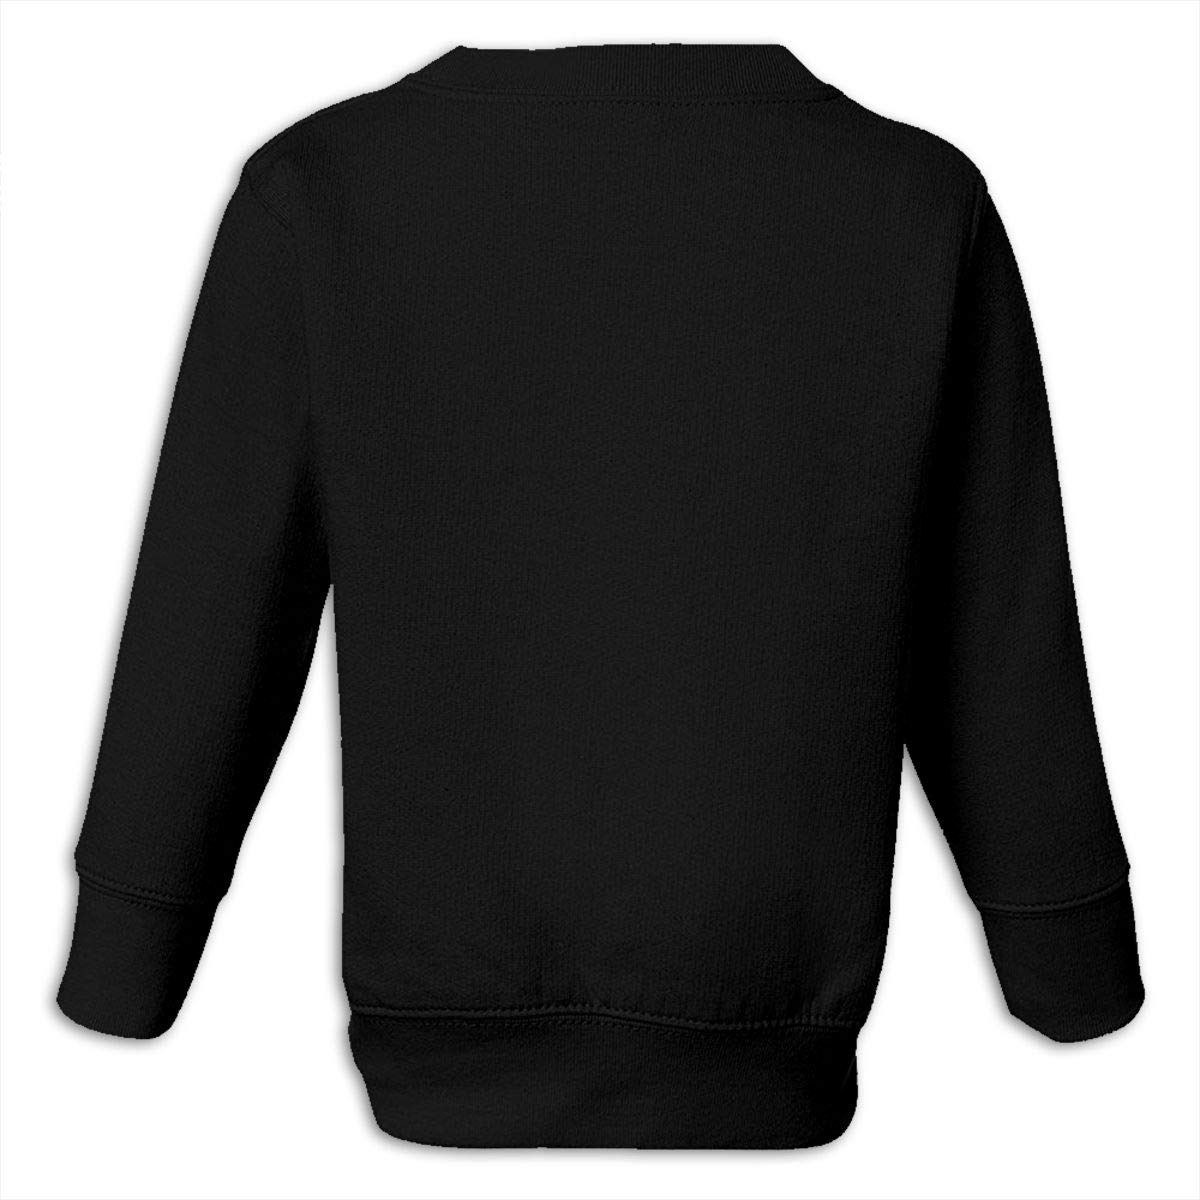 Yuliang YOU LOOK REALLY FUNNY DOING THAT WITH YOUR HEAD Boy Fashion Sweater Black